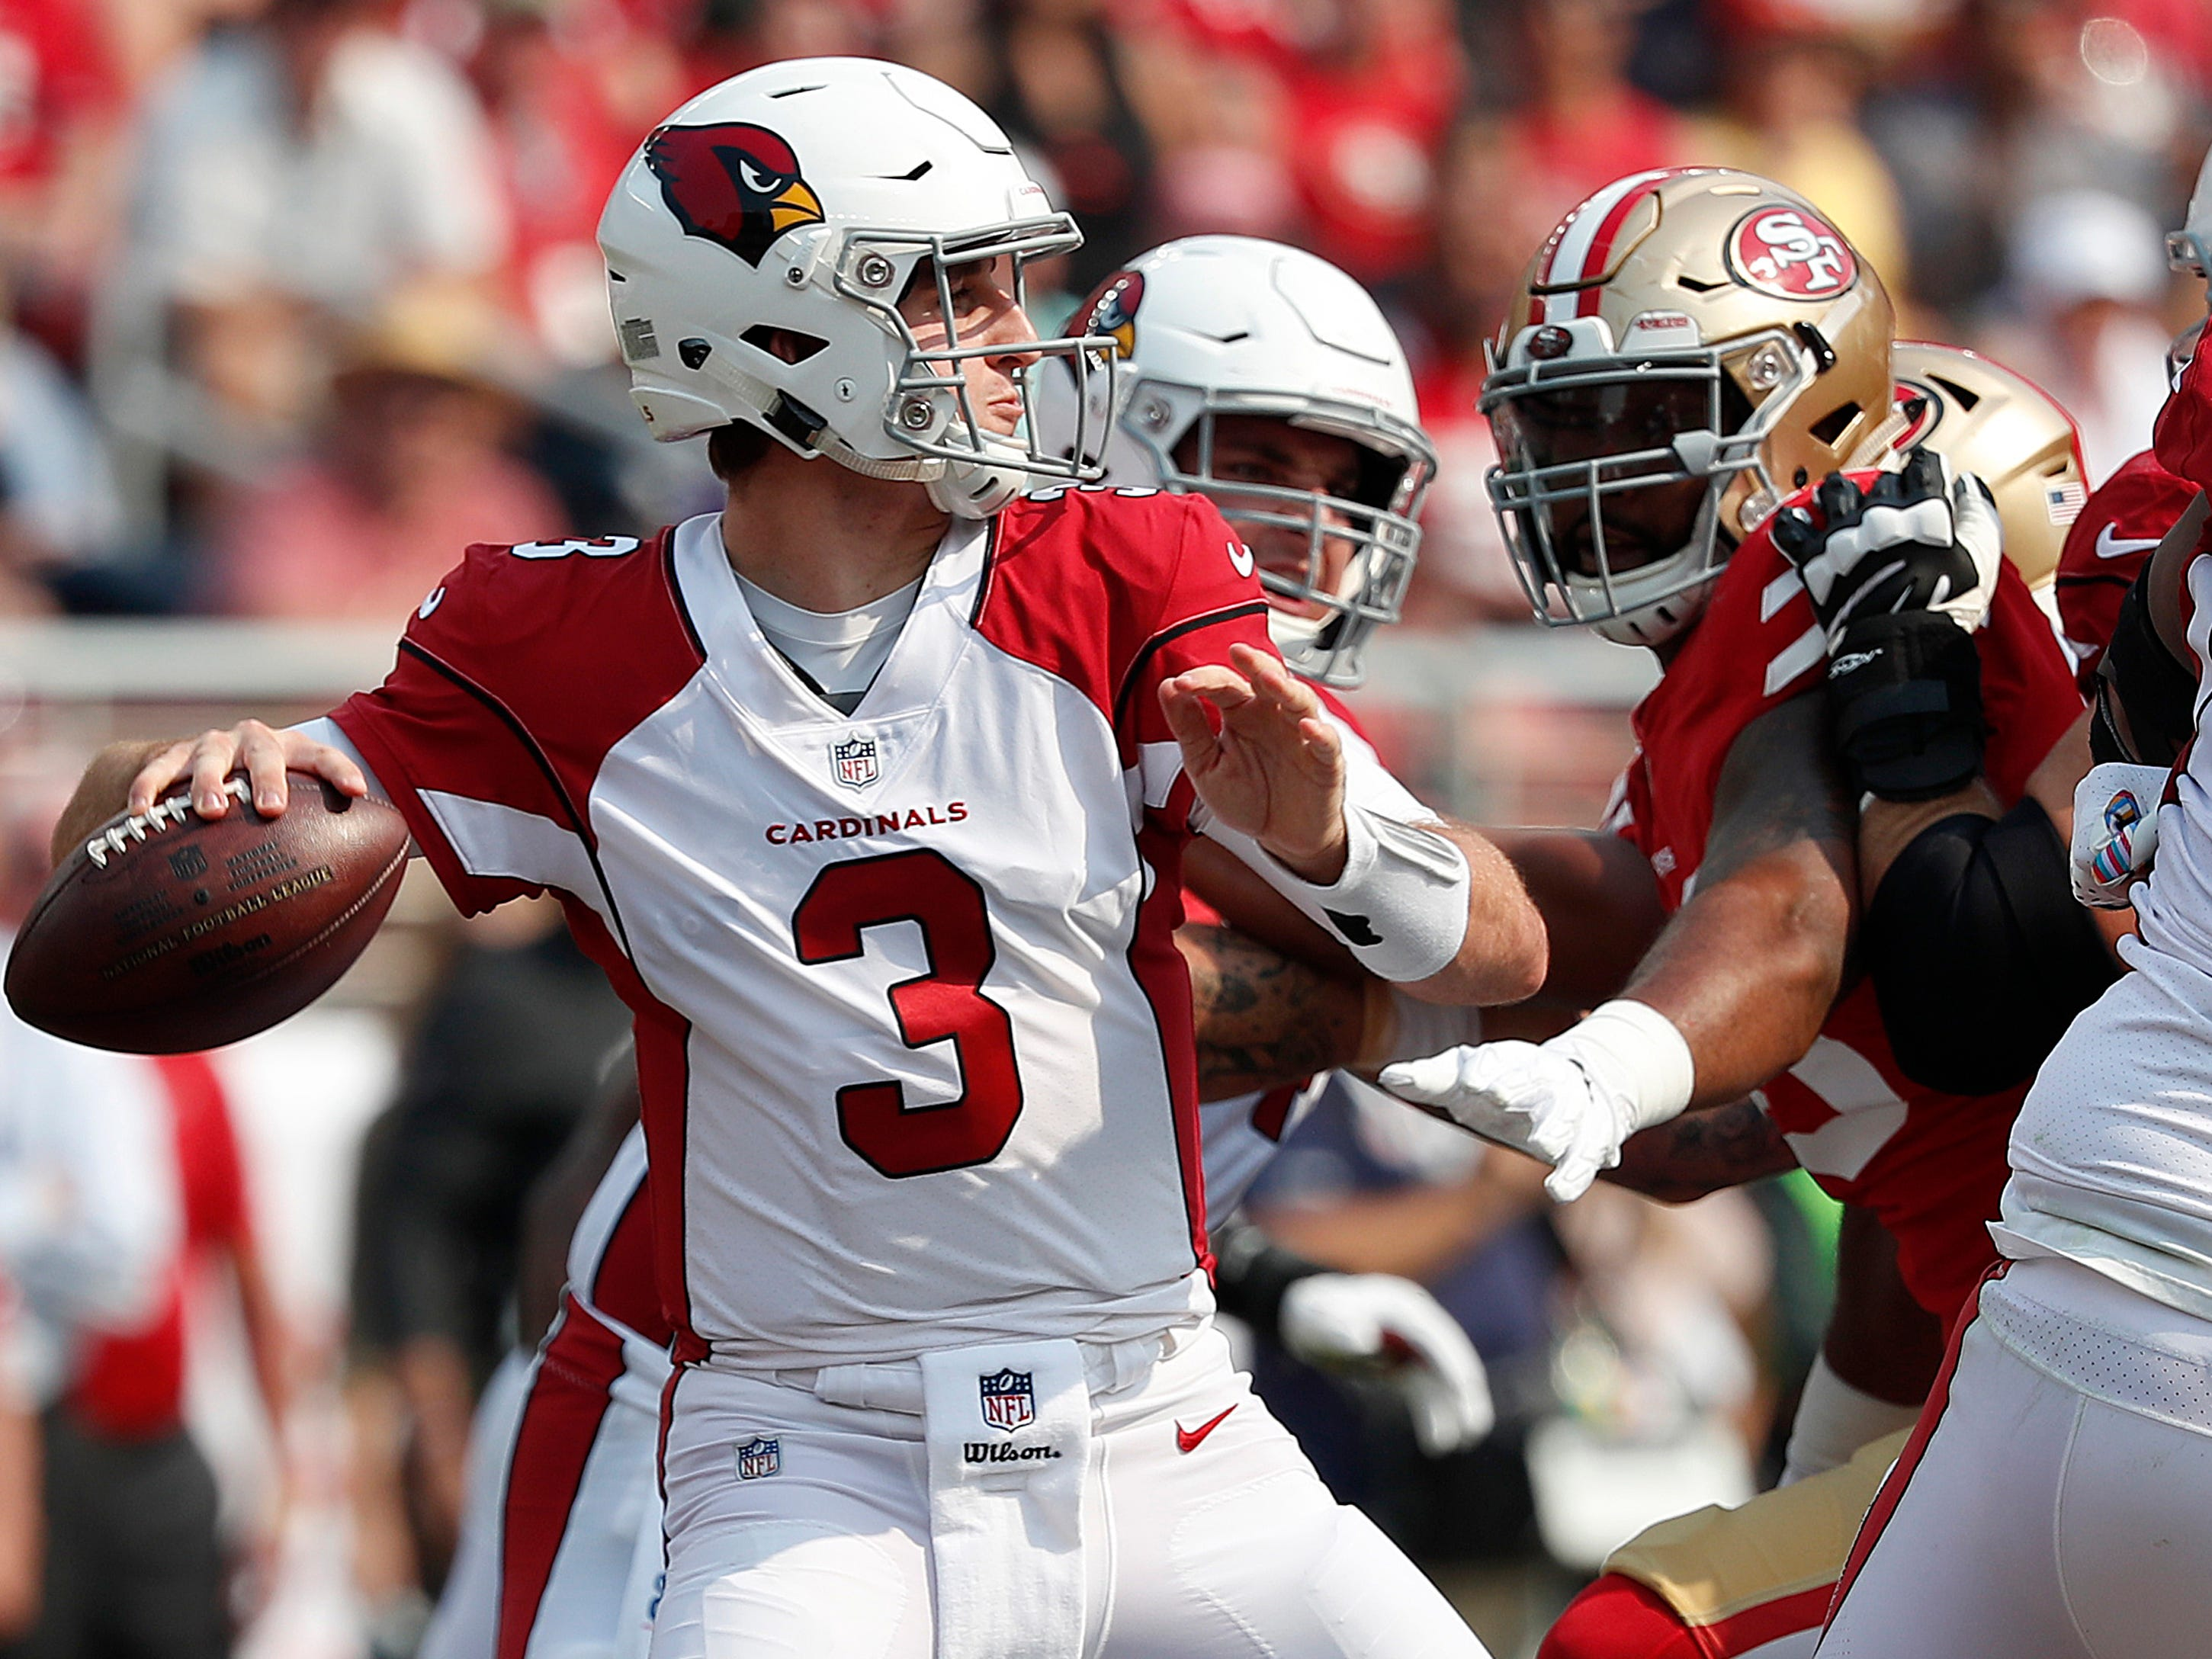 Arizona Cardinals quarterback Josh Rosen (3) looks to pass against the San Francisco 49ers during the first half of an NFL football game in Santa Clara, Calif., Sunday, Oct. 7, 2018.